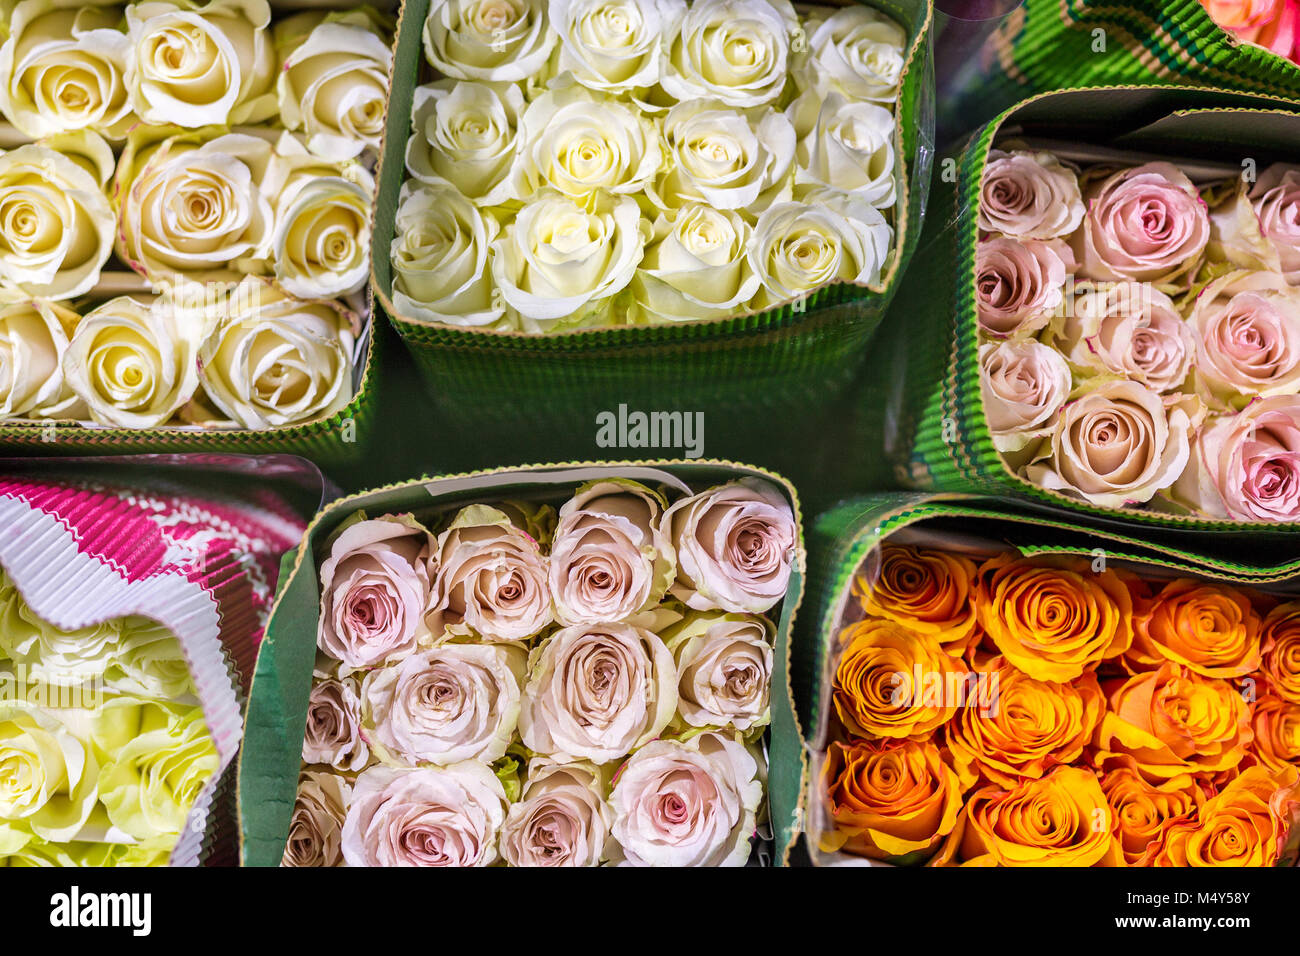 Hundreds of multicolored roses wrapped in paper fresh flower stock hundreds of multicolored roses wrapped in paper fresh flower background flower growing and production business wholesale and retail trade flower s mightylinksfo